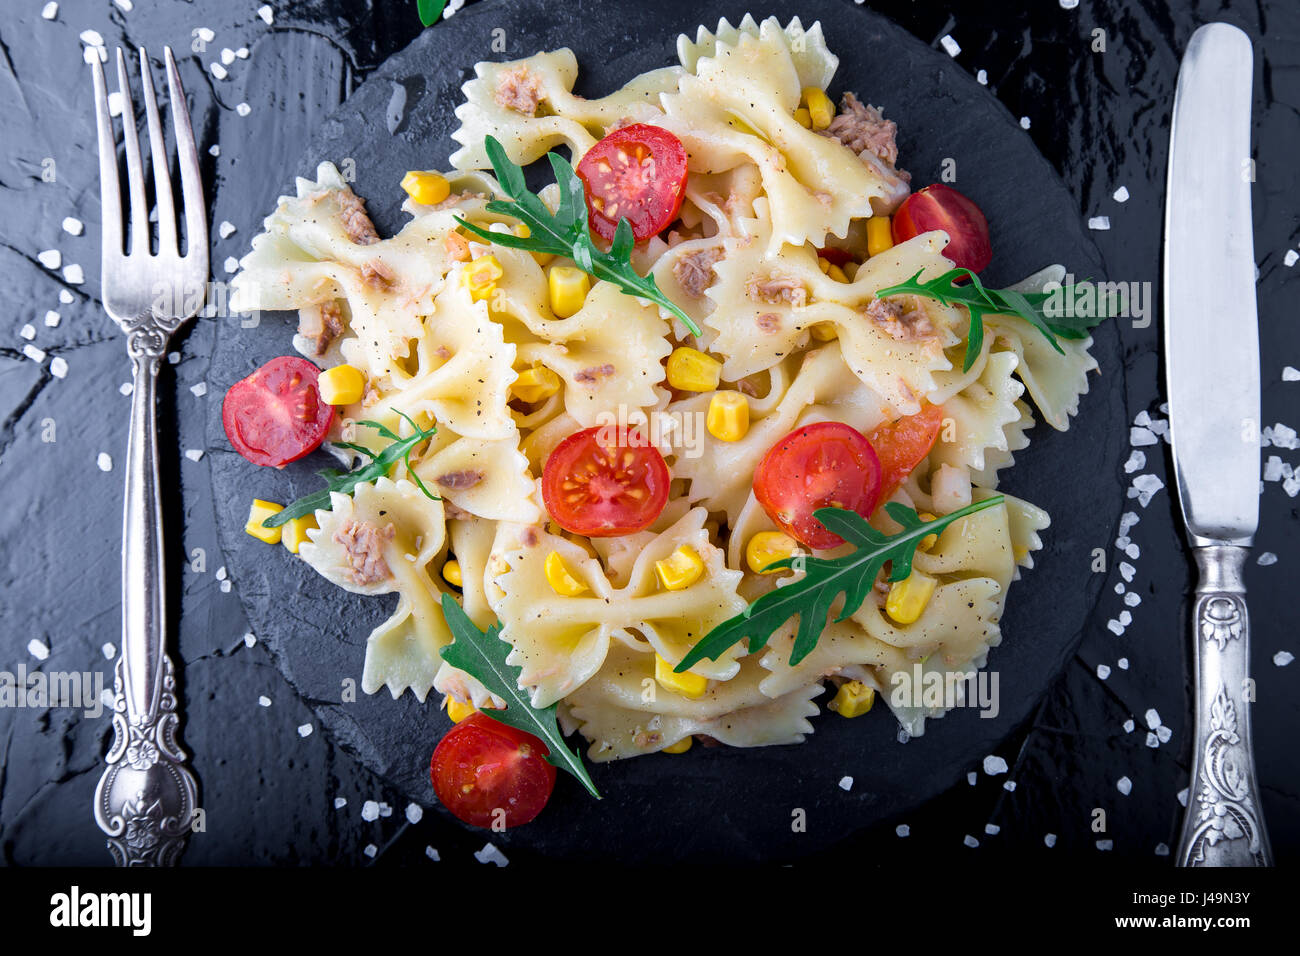 Pasta salad in slate plate with tomatoes cherry, tuna, corn and arugula near knife and spoon. Top view. ingredients. - Stock Image